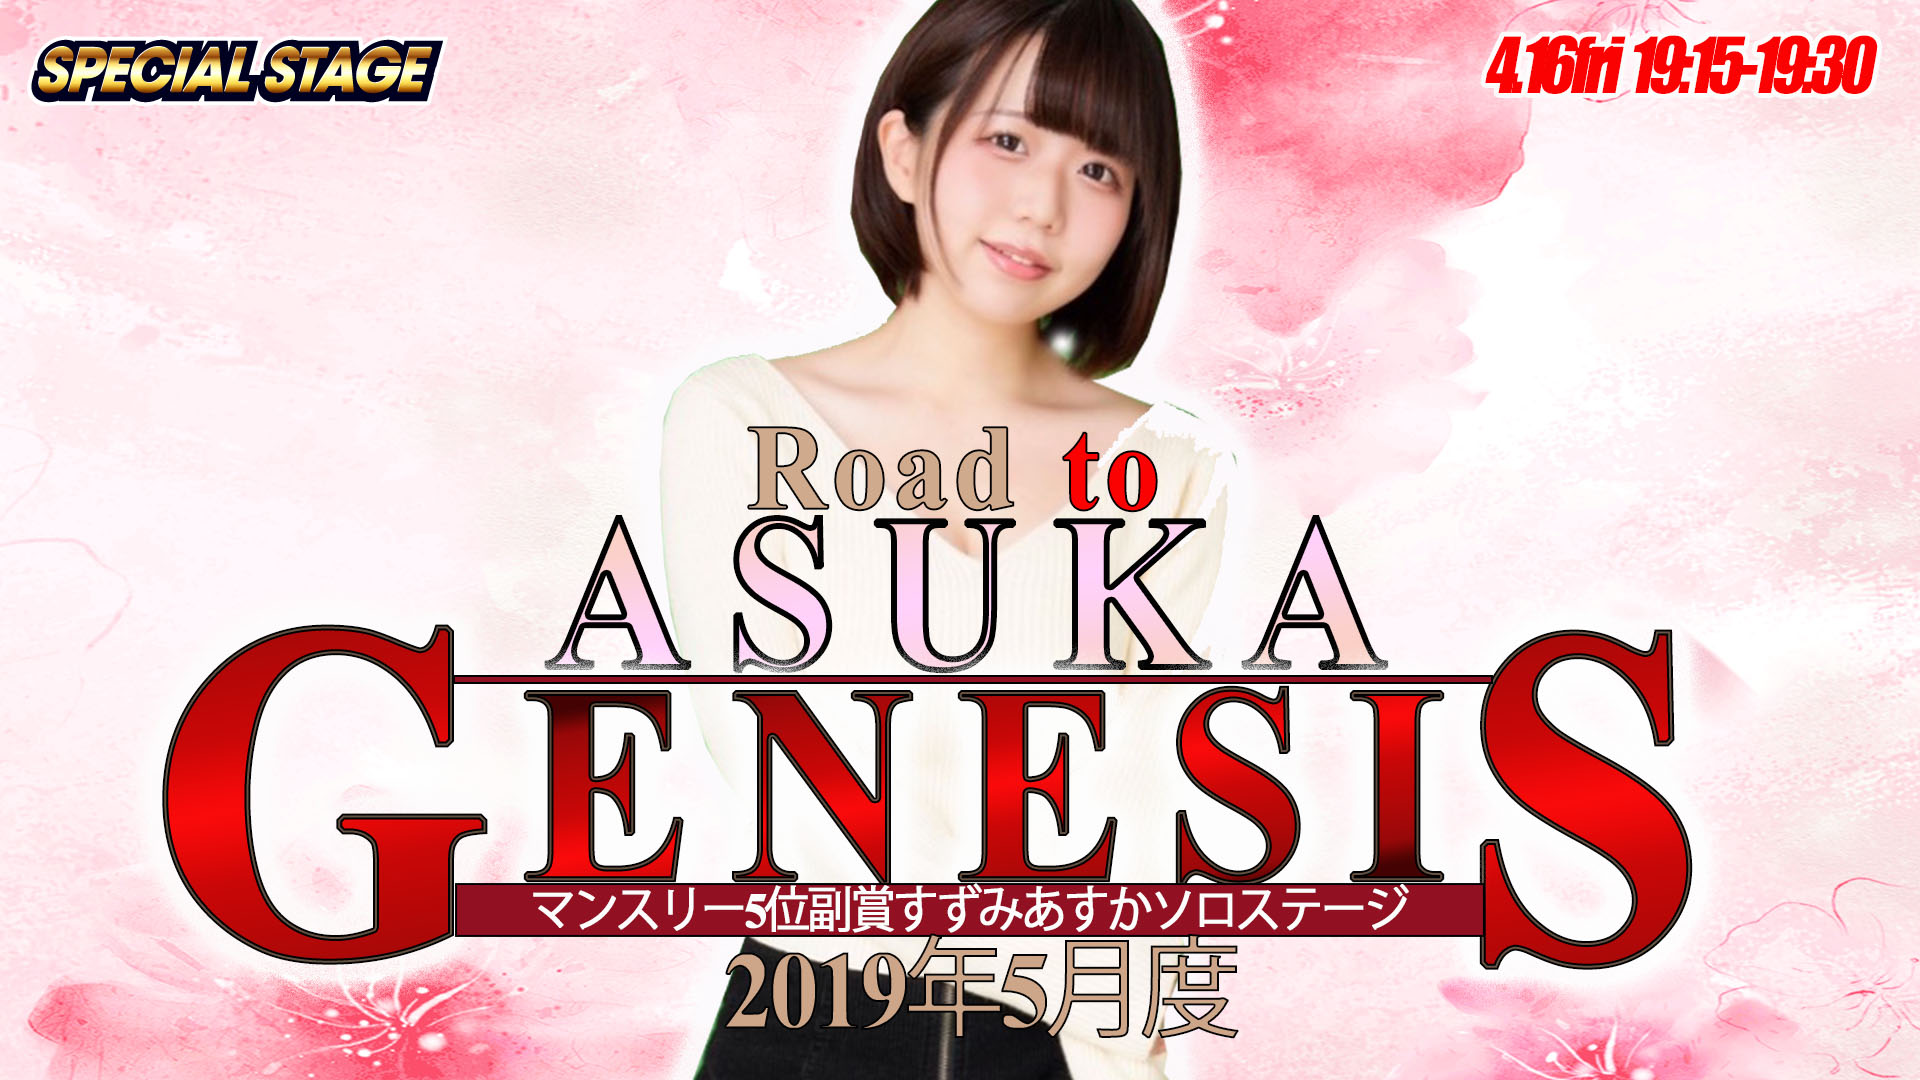 road to ASUKA GENESIS